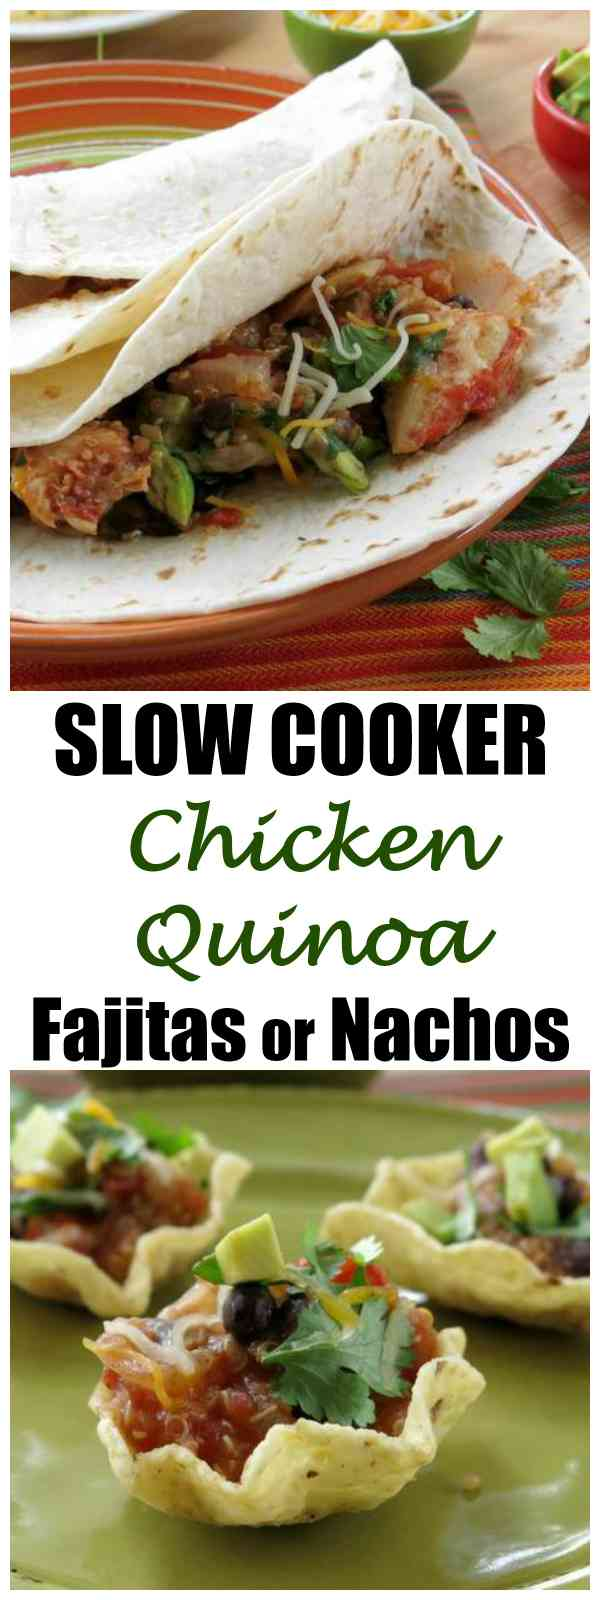 Slow Cooker Chicken Quinoa Nachos or Fajitas Recipe